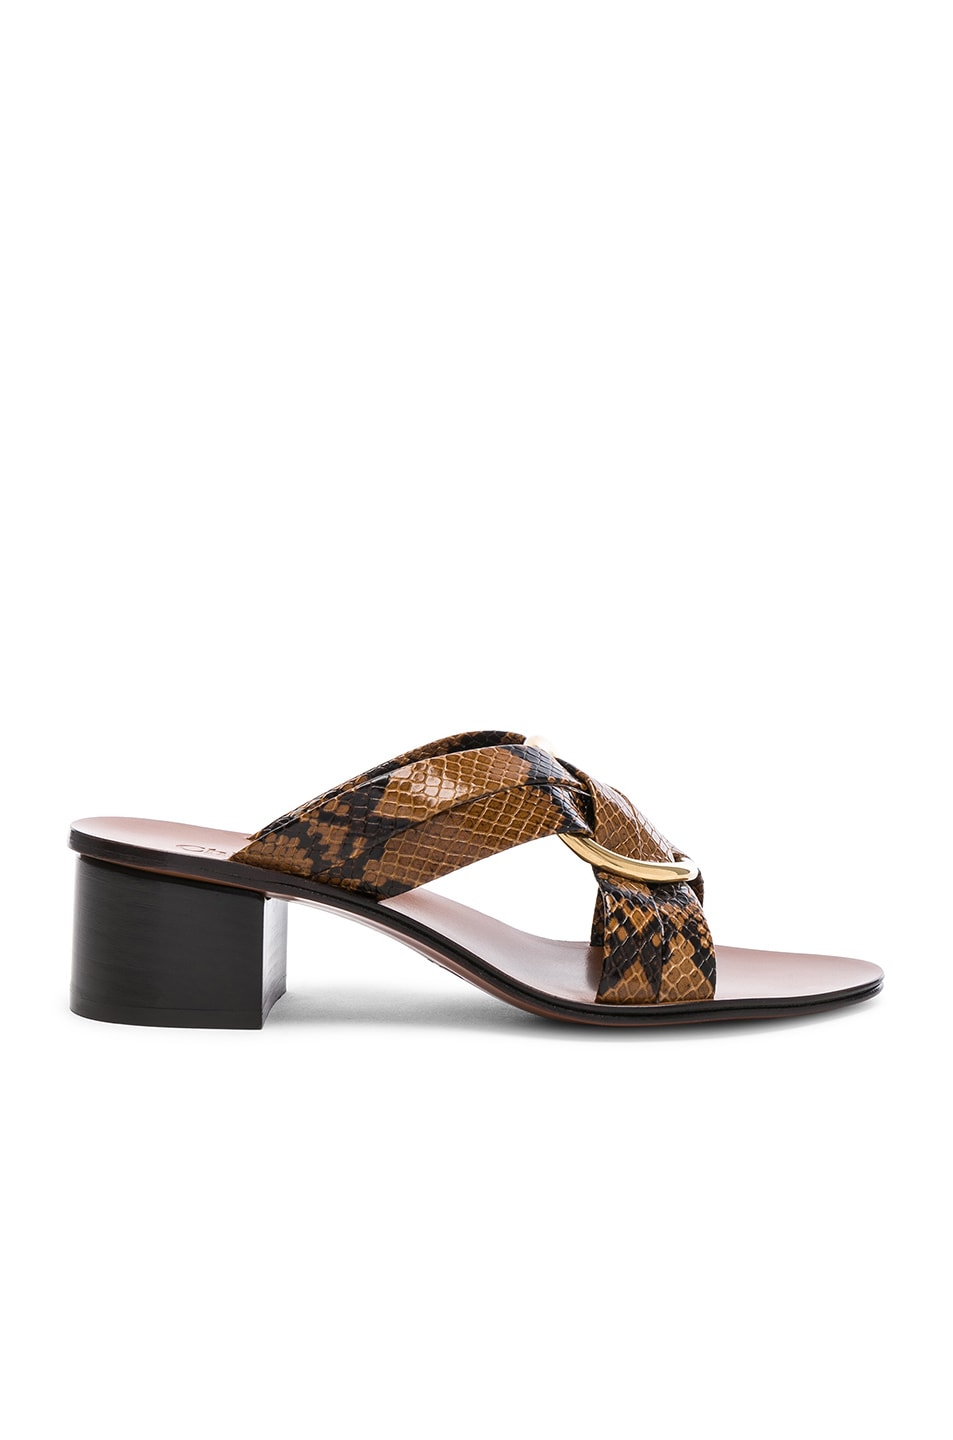 Image 1 of Chloe Rony Python Print Leather Cross Strap Mules in Light Tan